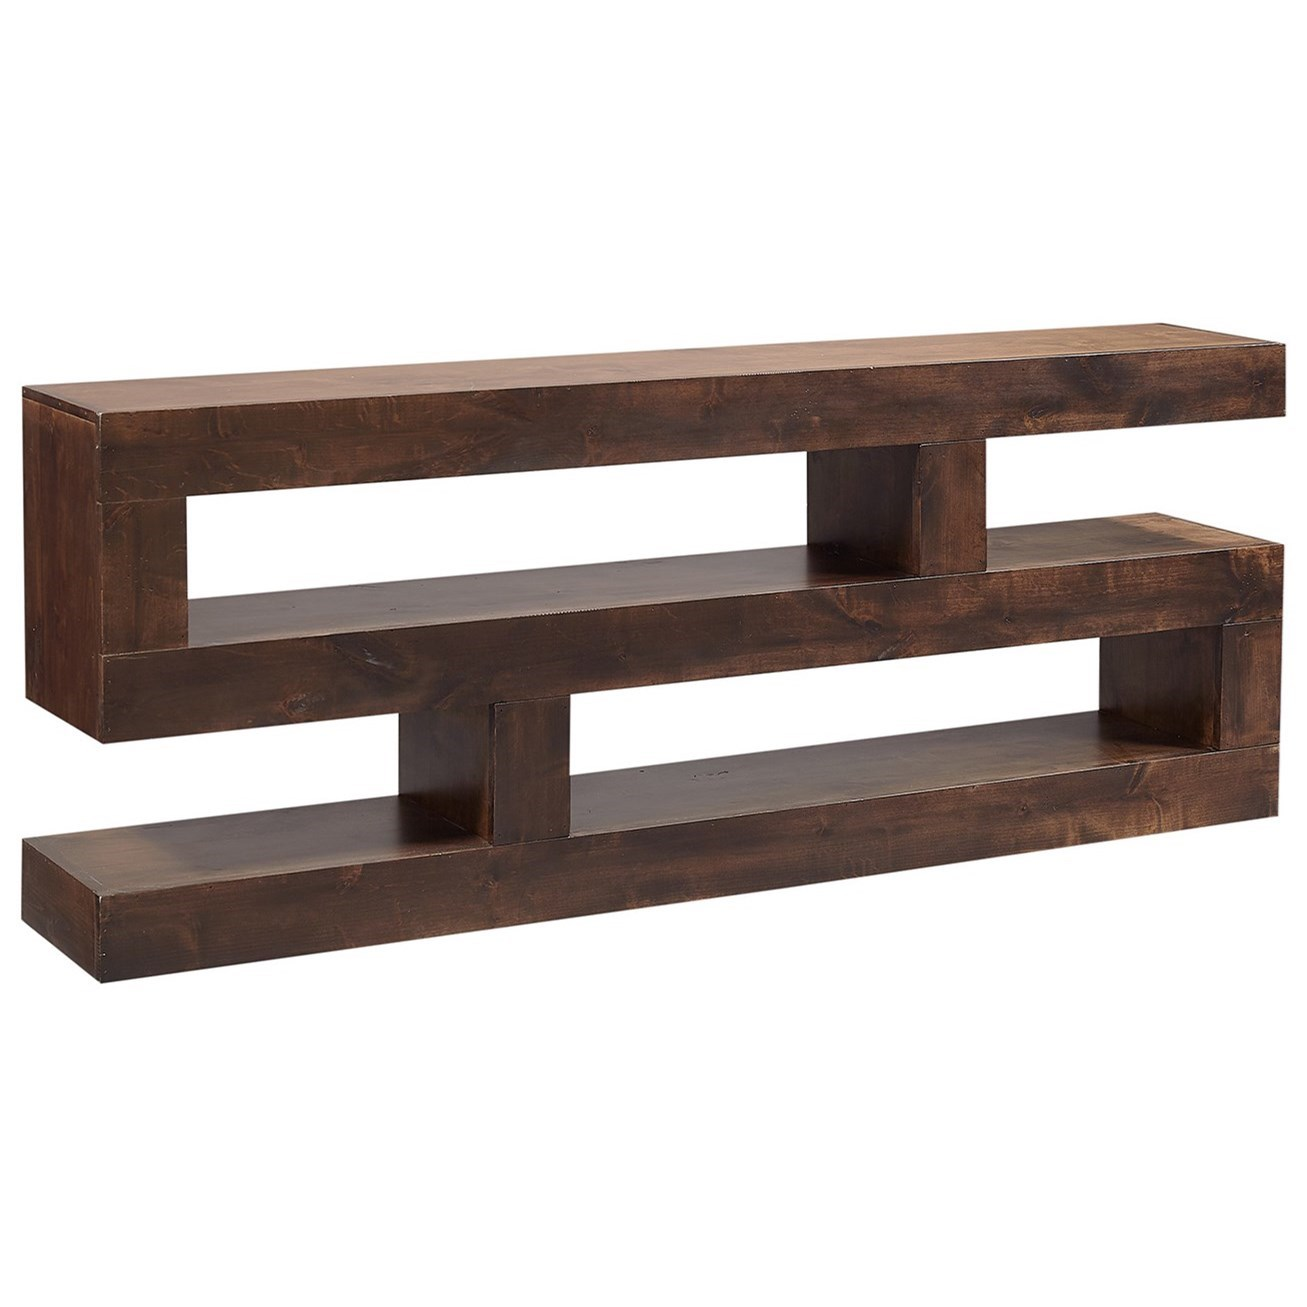 Nova Alder Console Table TV Stand by Aspenhome at Walker's Furniture